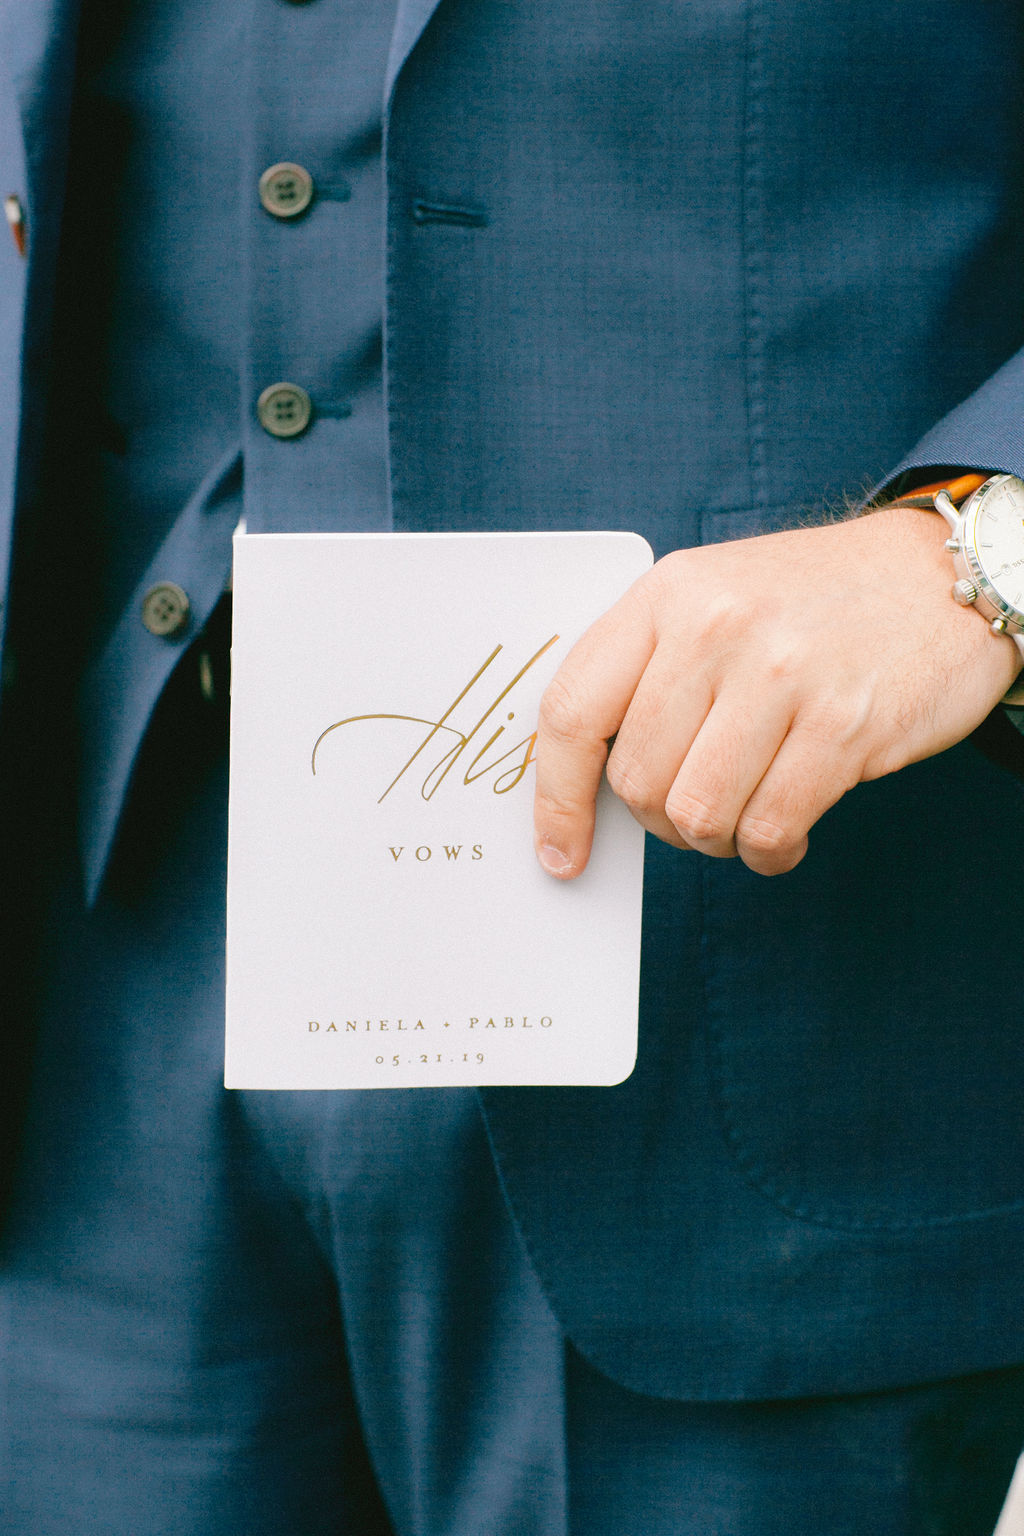 A groom holding his vow book